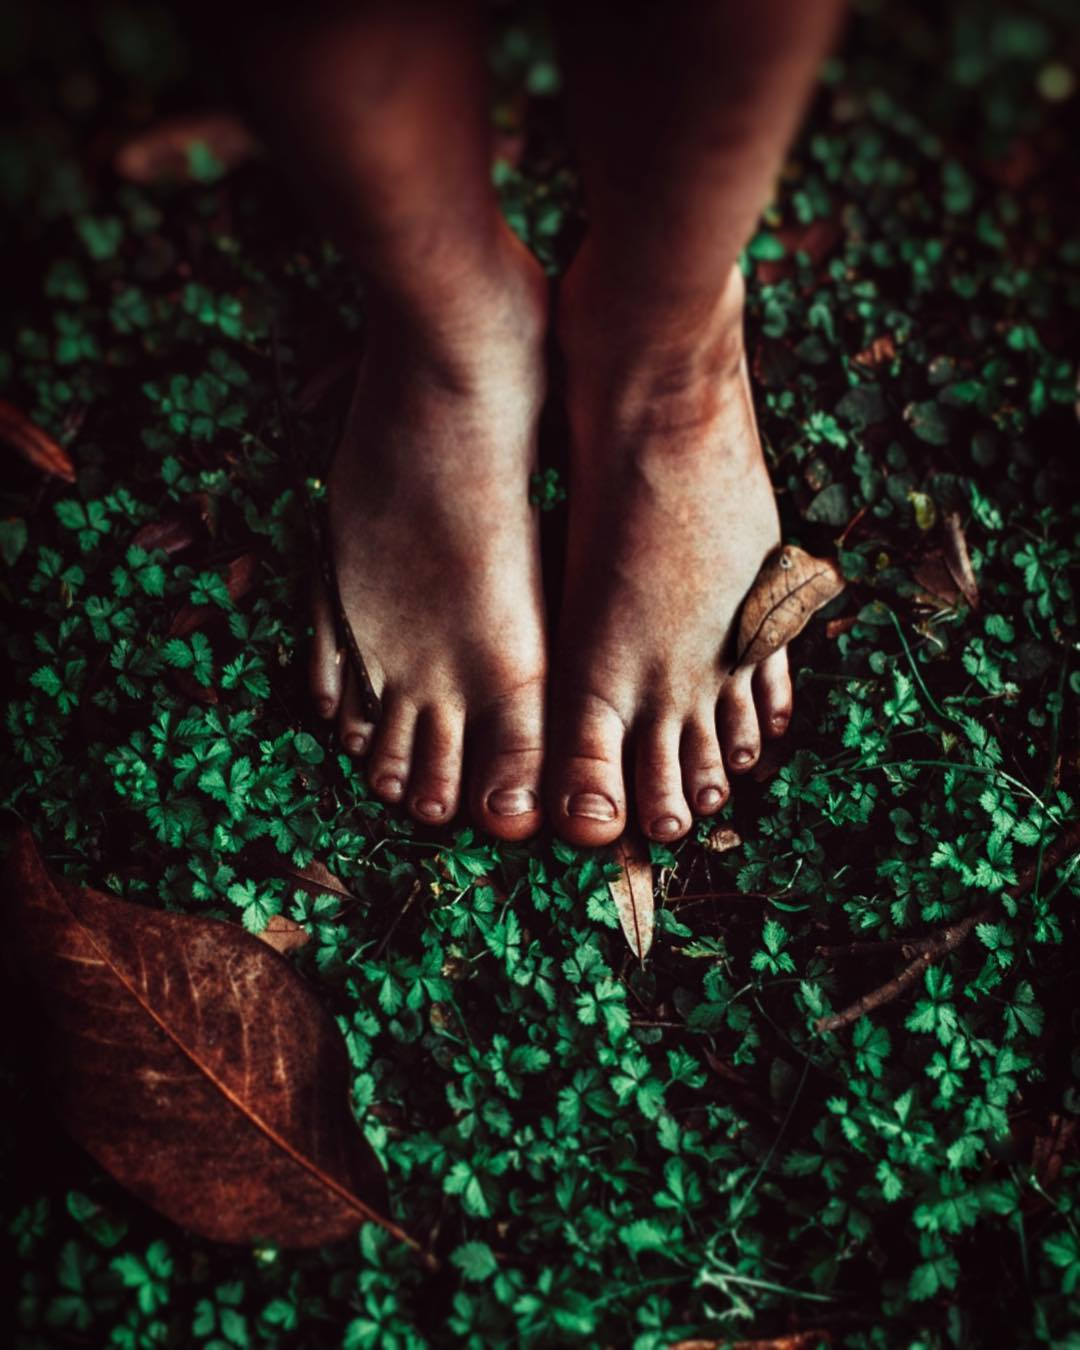 On #EarthDay, you: a) Went barefoot ✔️ b) Wore shoes #WHP�� https://t.co/qWHJAnAkAc https://t.co/IriQDkGeiG